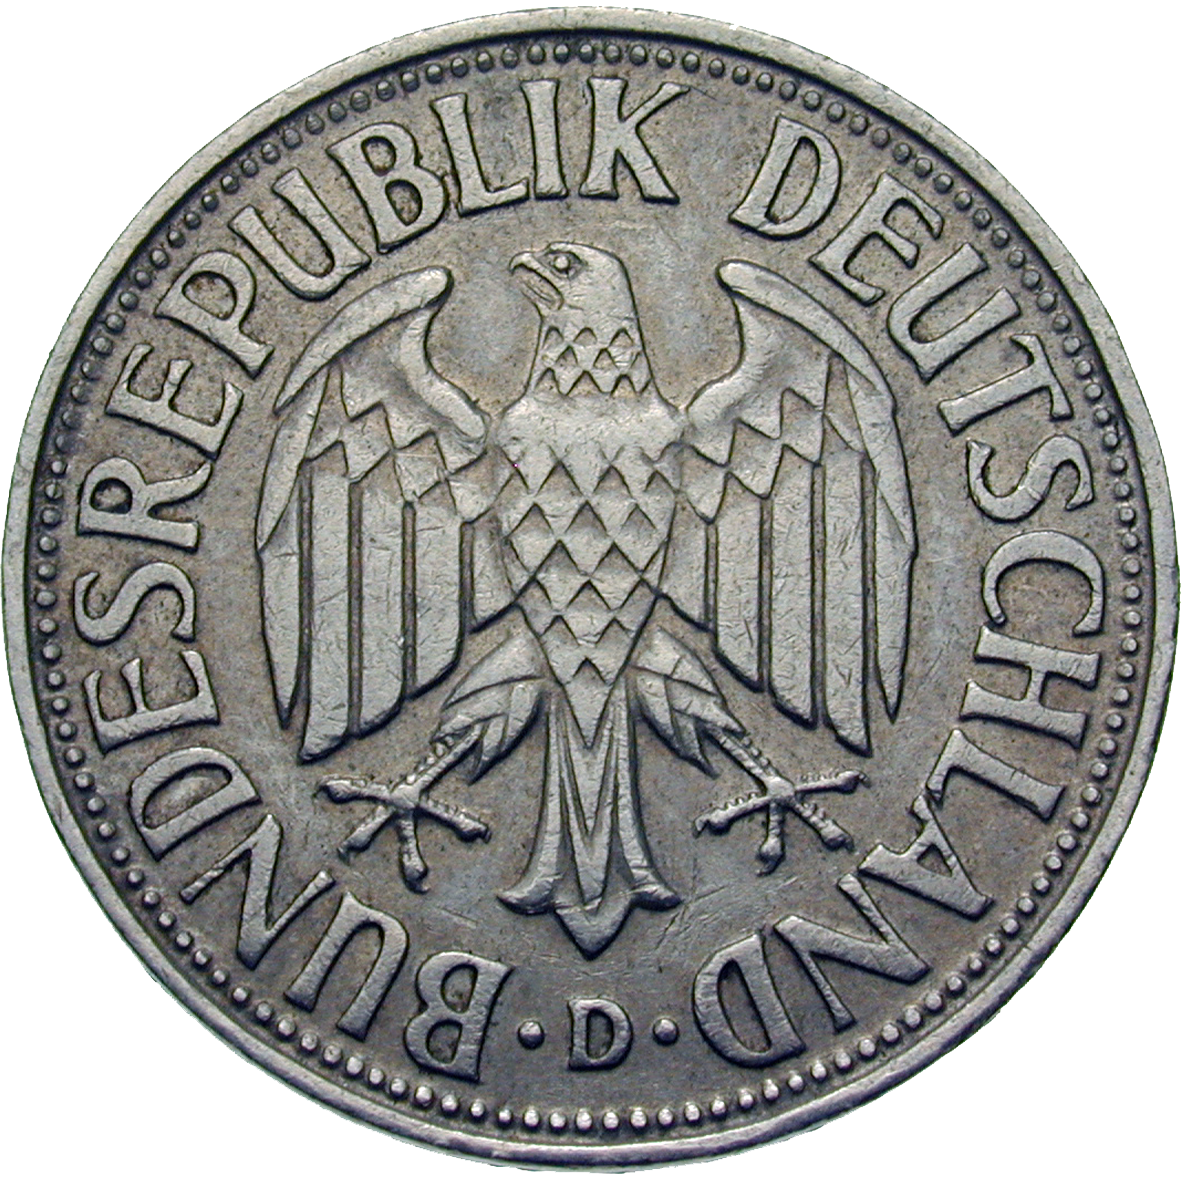 Federal Republic of Germany, 1 Deutsche Mark 1955 (obverse)